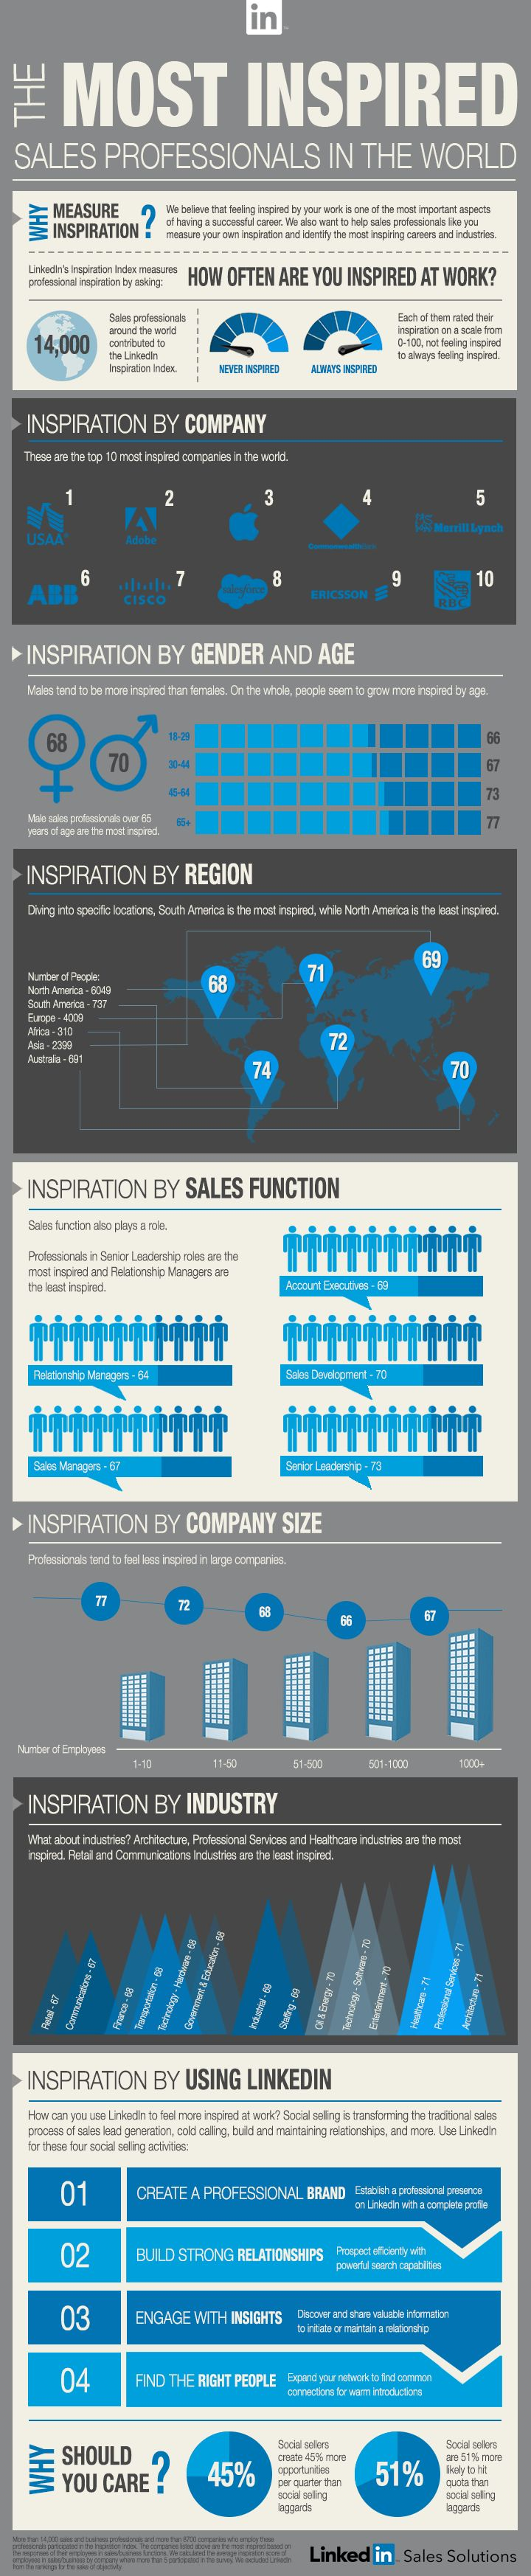 The most inspired sales professionals in the world [infographic]